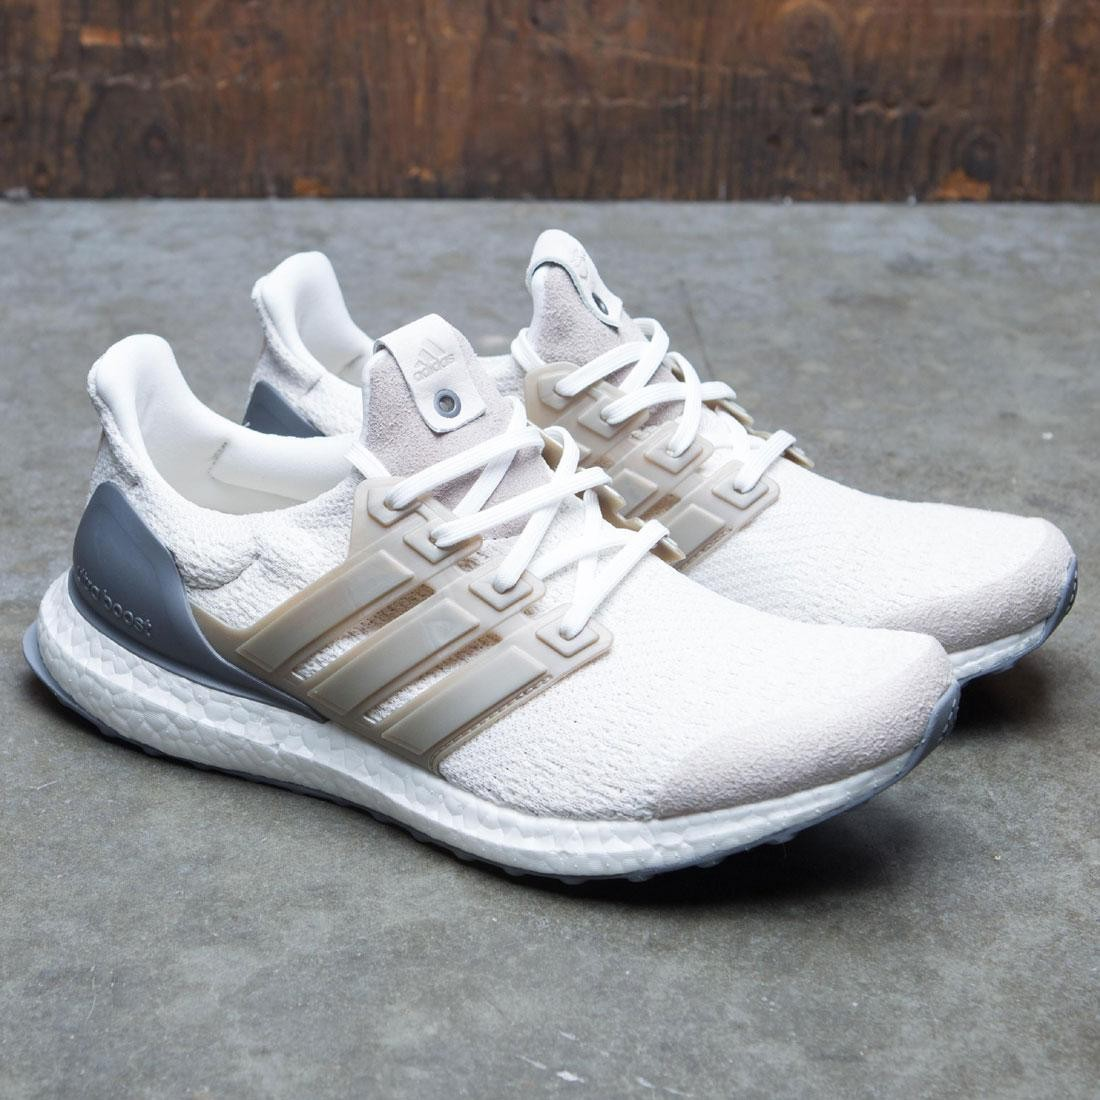 a59ebb312 Adidas Consortium Men UltraBOOST Lux (white   vintage white   chocolate  brown)